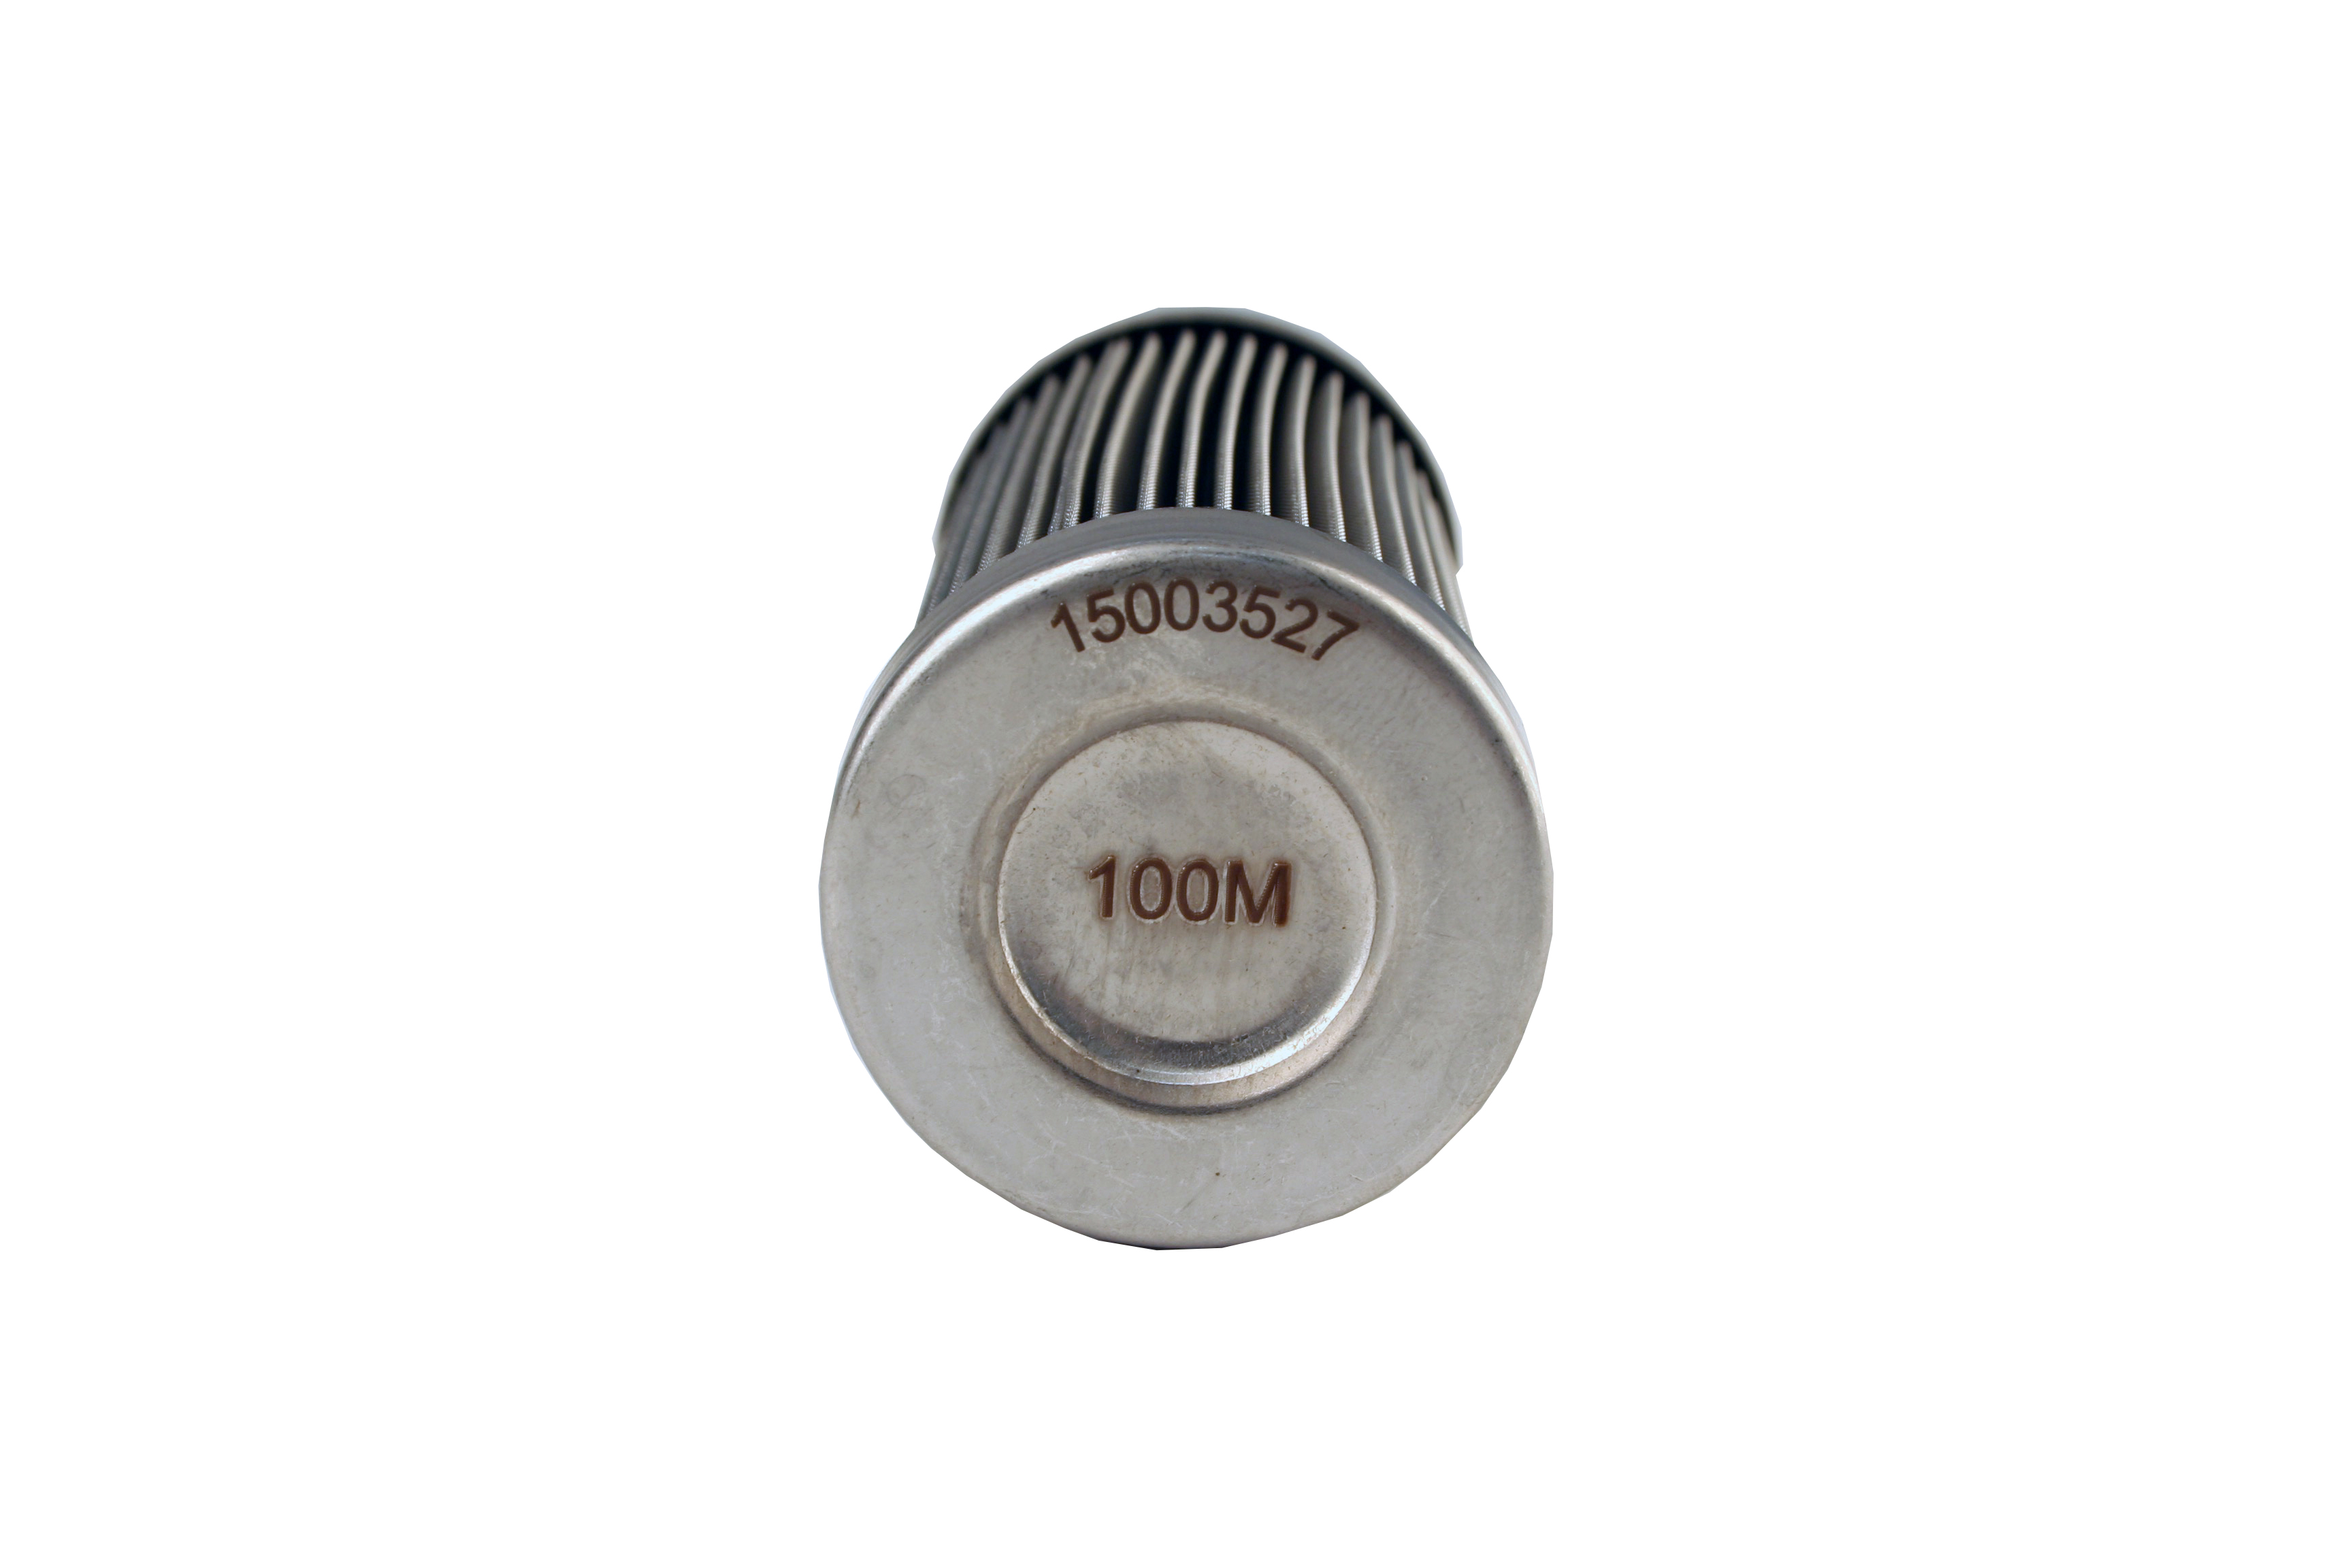 100-micron Stainless Steel Bulkhead Fuel Filter